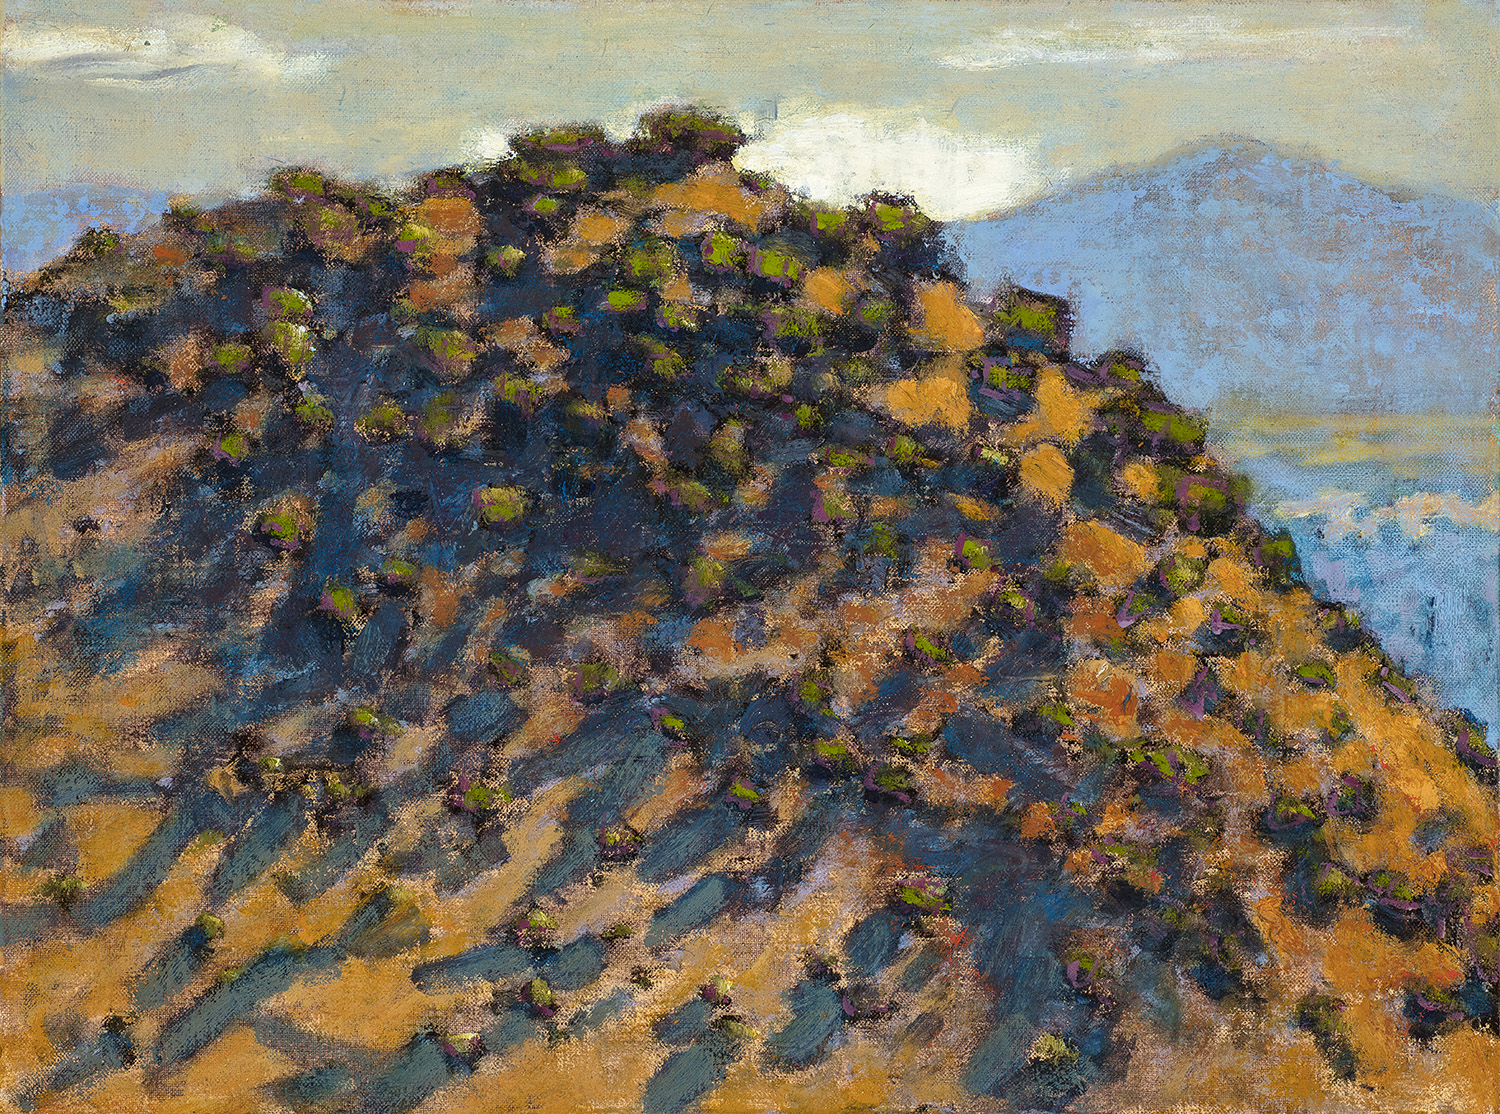 Hillside, New Mexico  | oil on linen | 12 x 16"